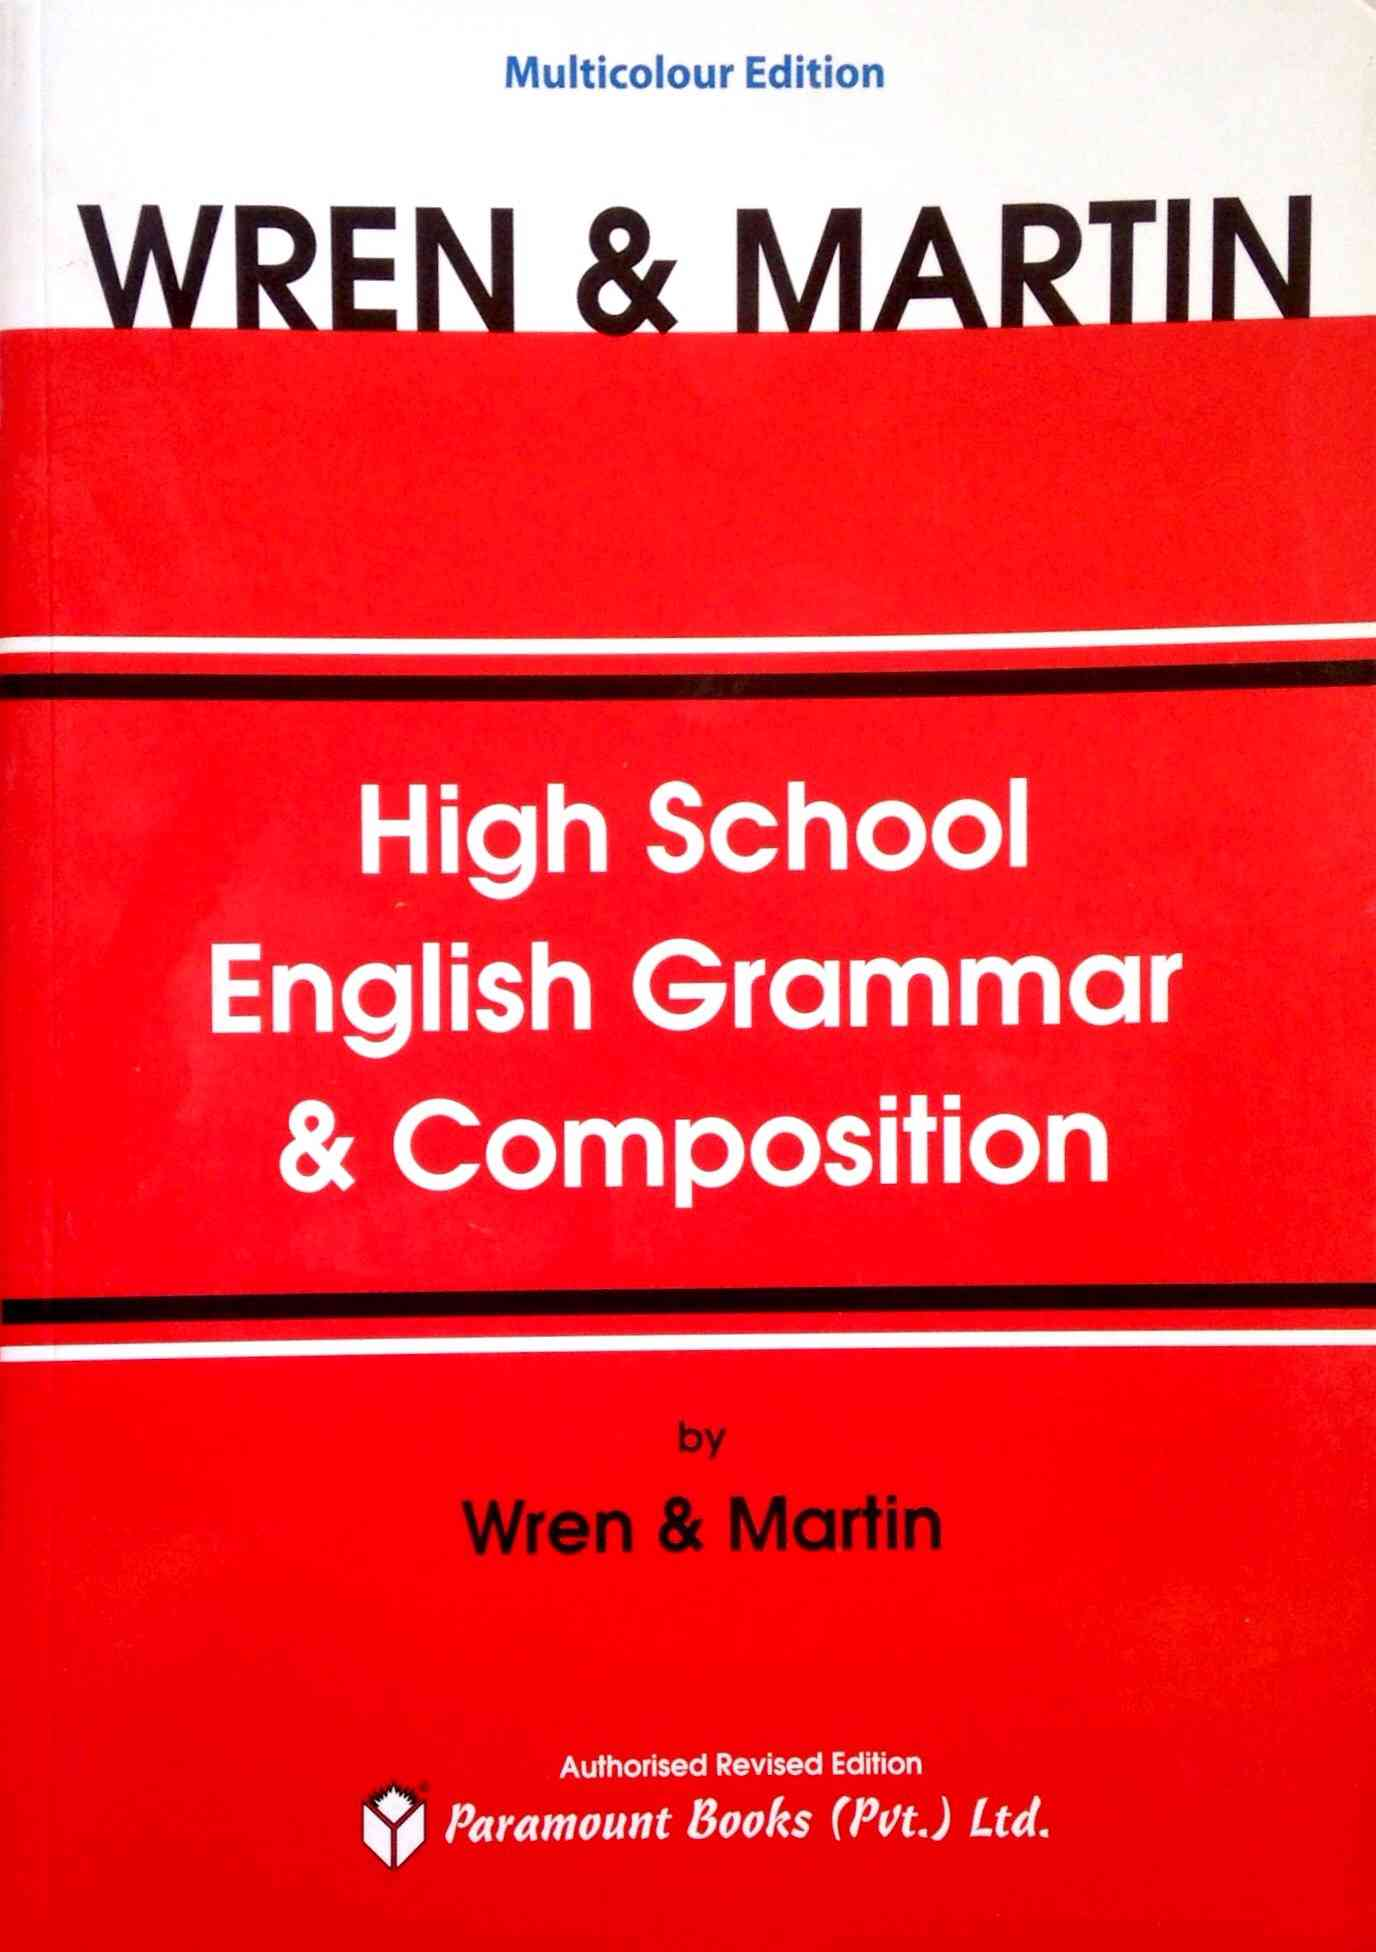 Wren and Martin High School English Grammar and Composition For Class 7